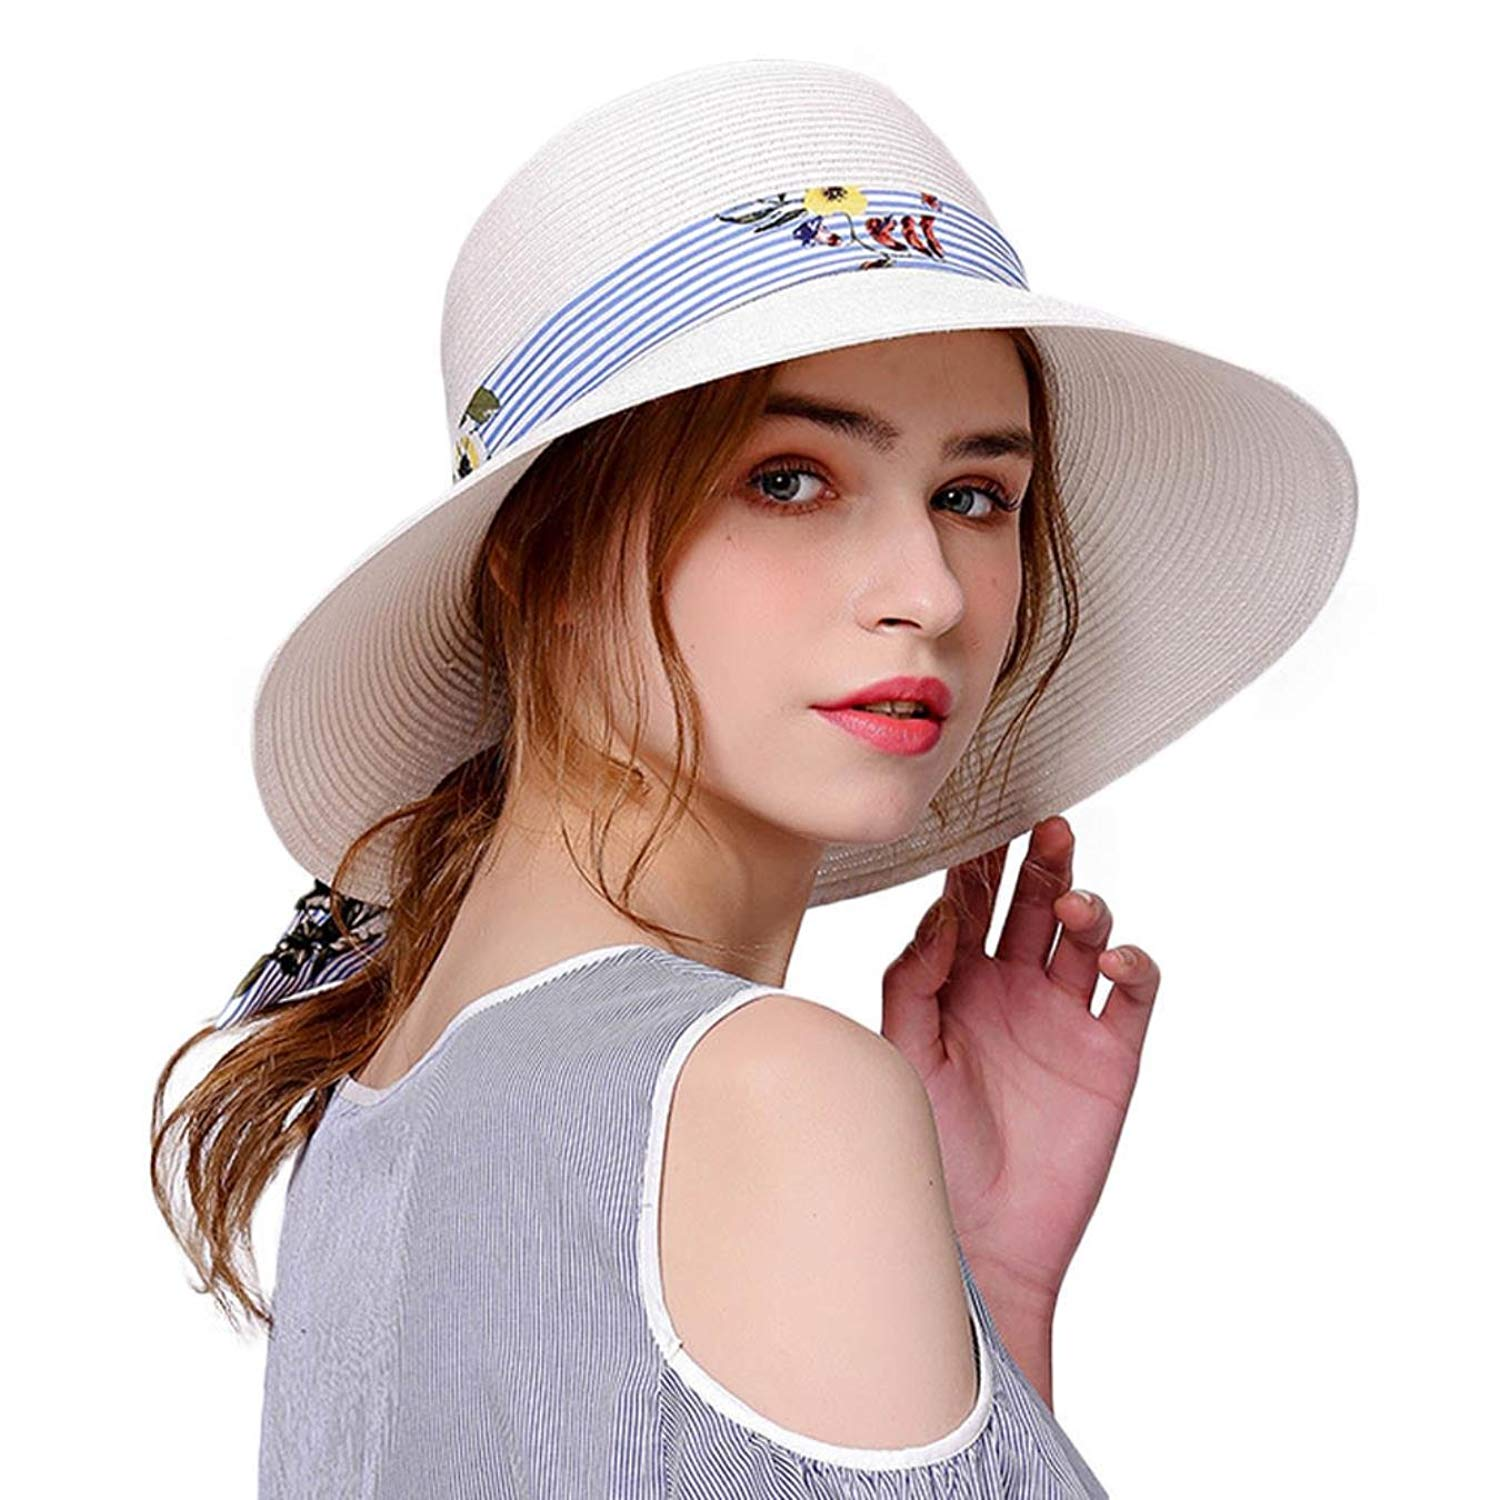 13be4d74bea Buy Straw Hat for Women Wide Brim Floppy Sun UV Beach Fashion Hats ...